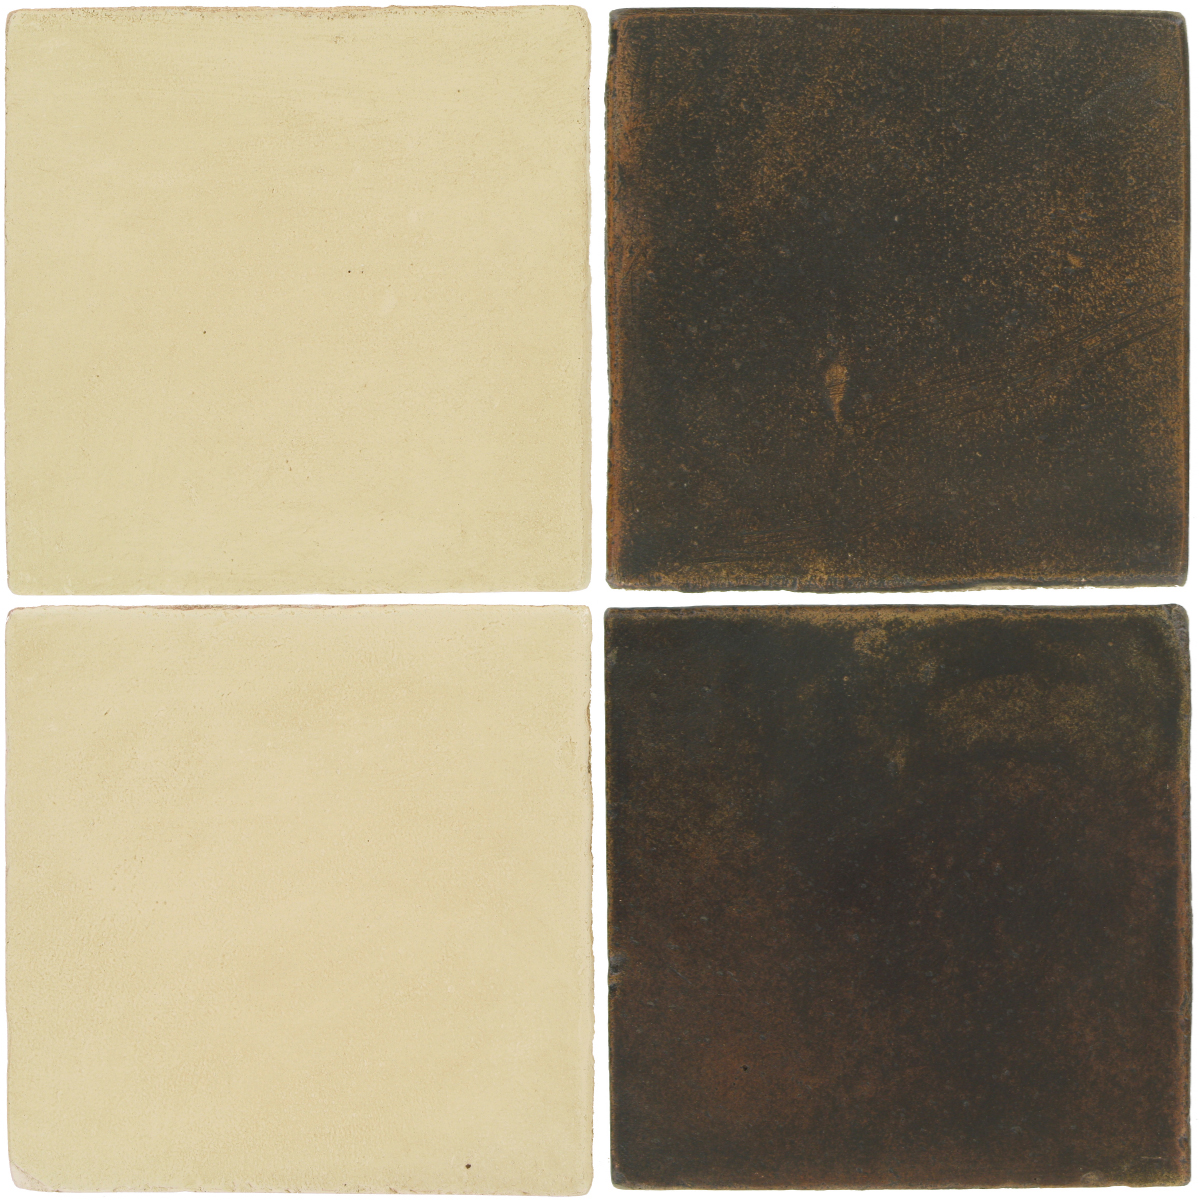 Pedralbes Antique Terracotta  2 Color Combinations  OHS-PGPW Pergamino White + OHS-PSCO Cologne Brown